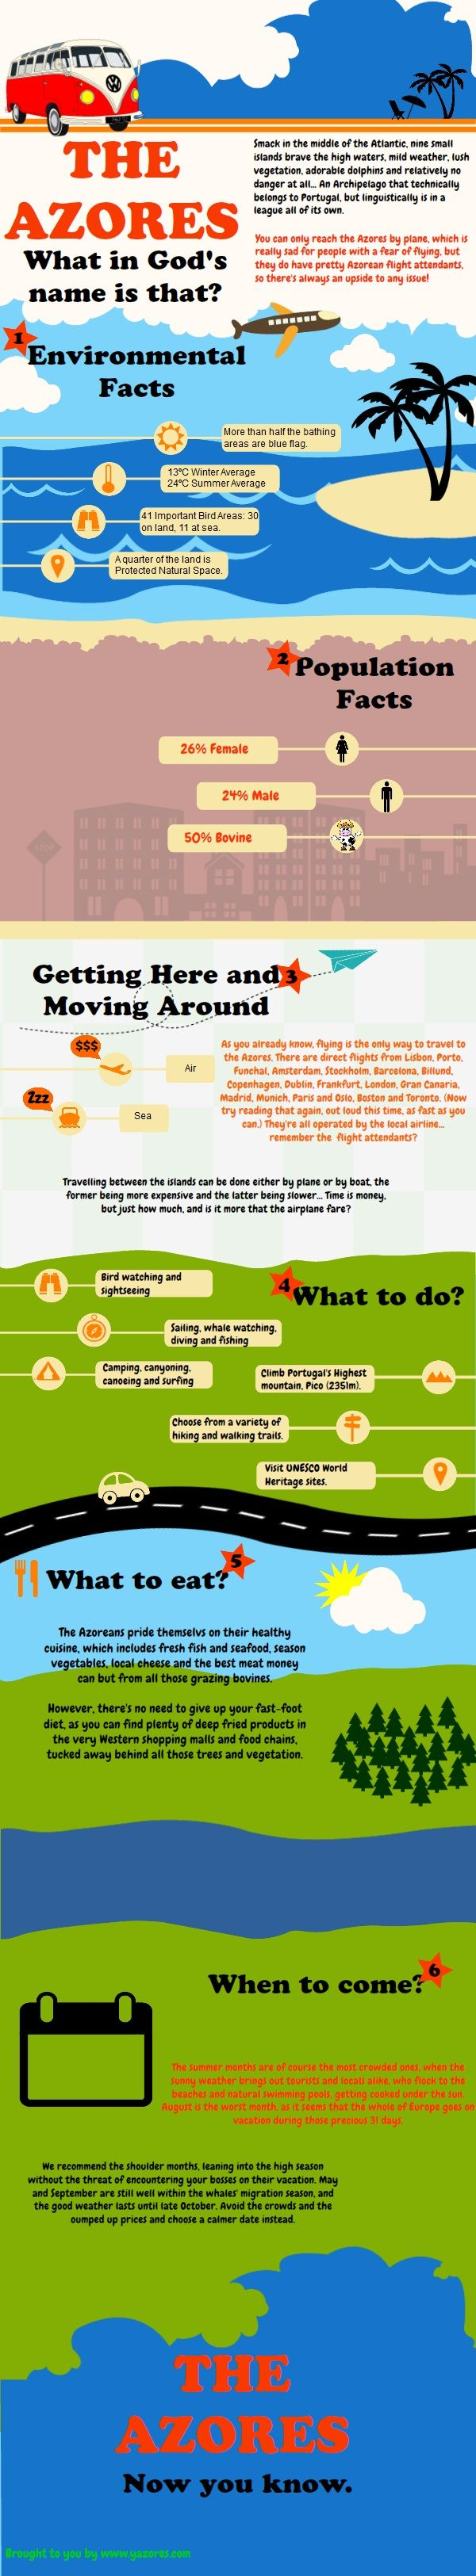 All About the Azores (Infographic)